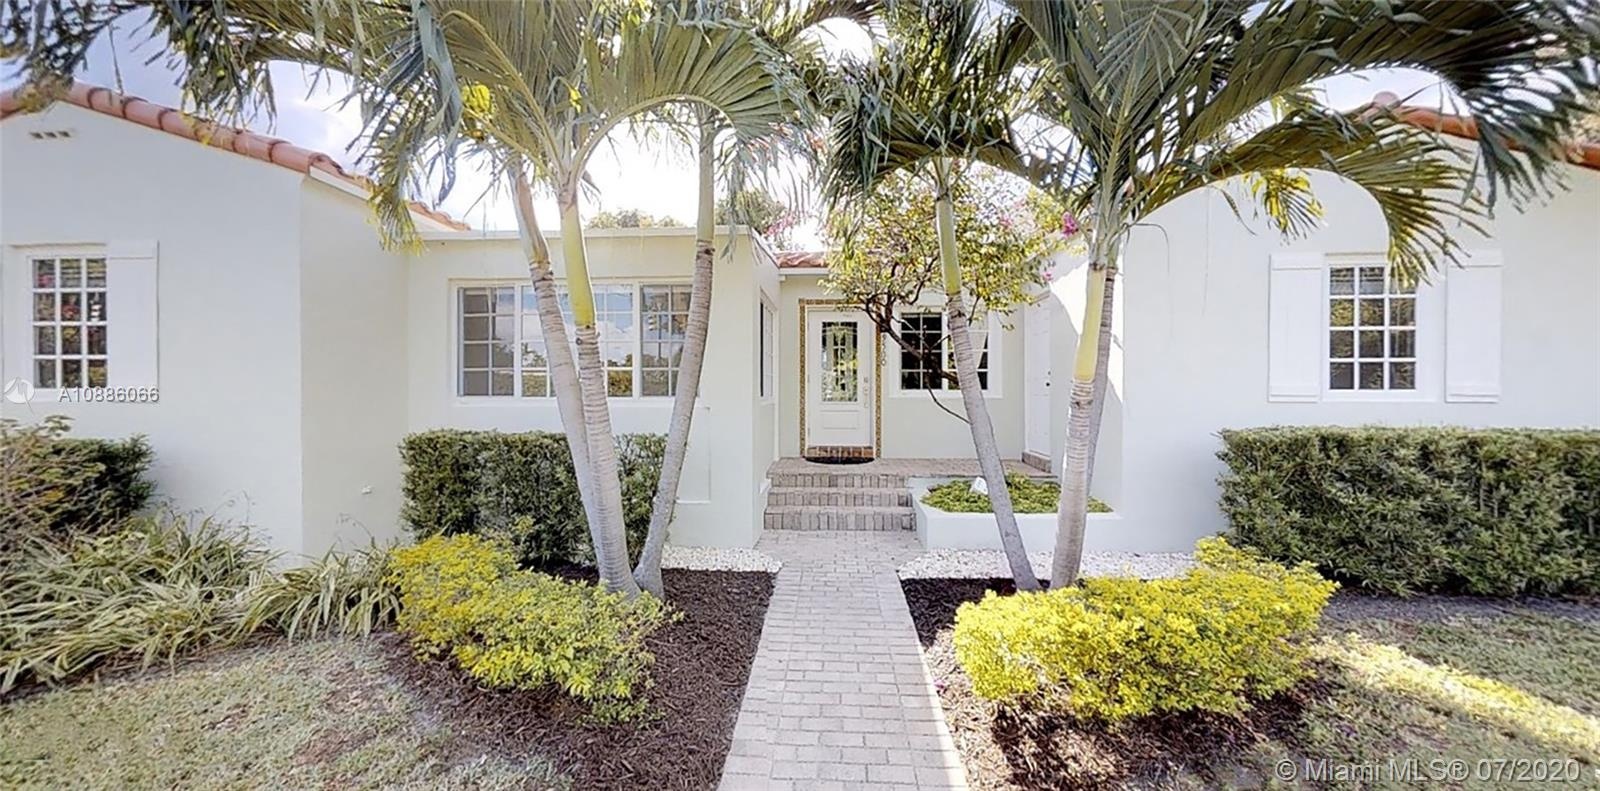 9500 N Miami Ave  For Sale A10886066, FL